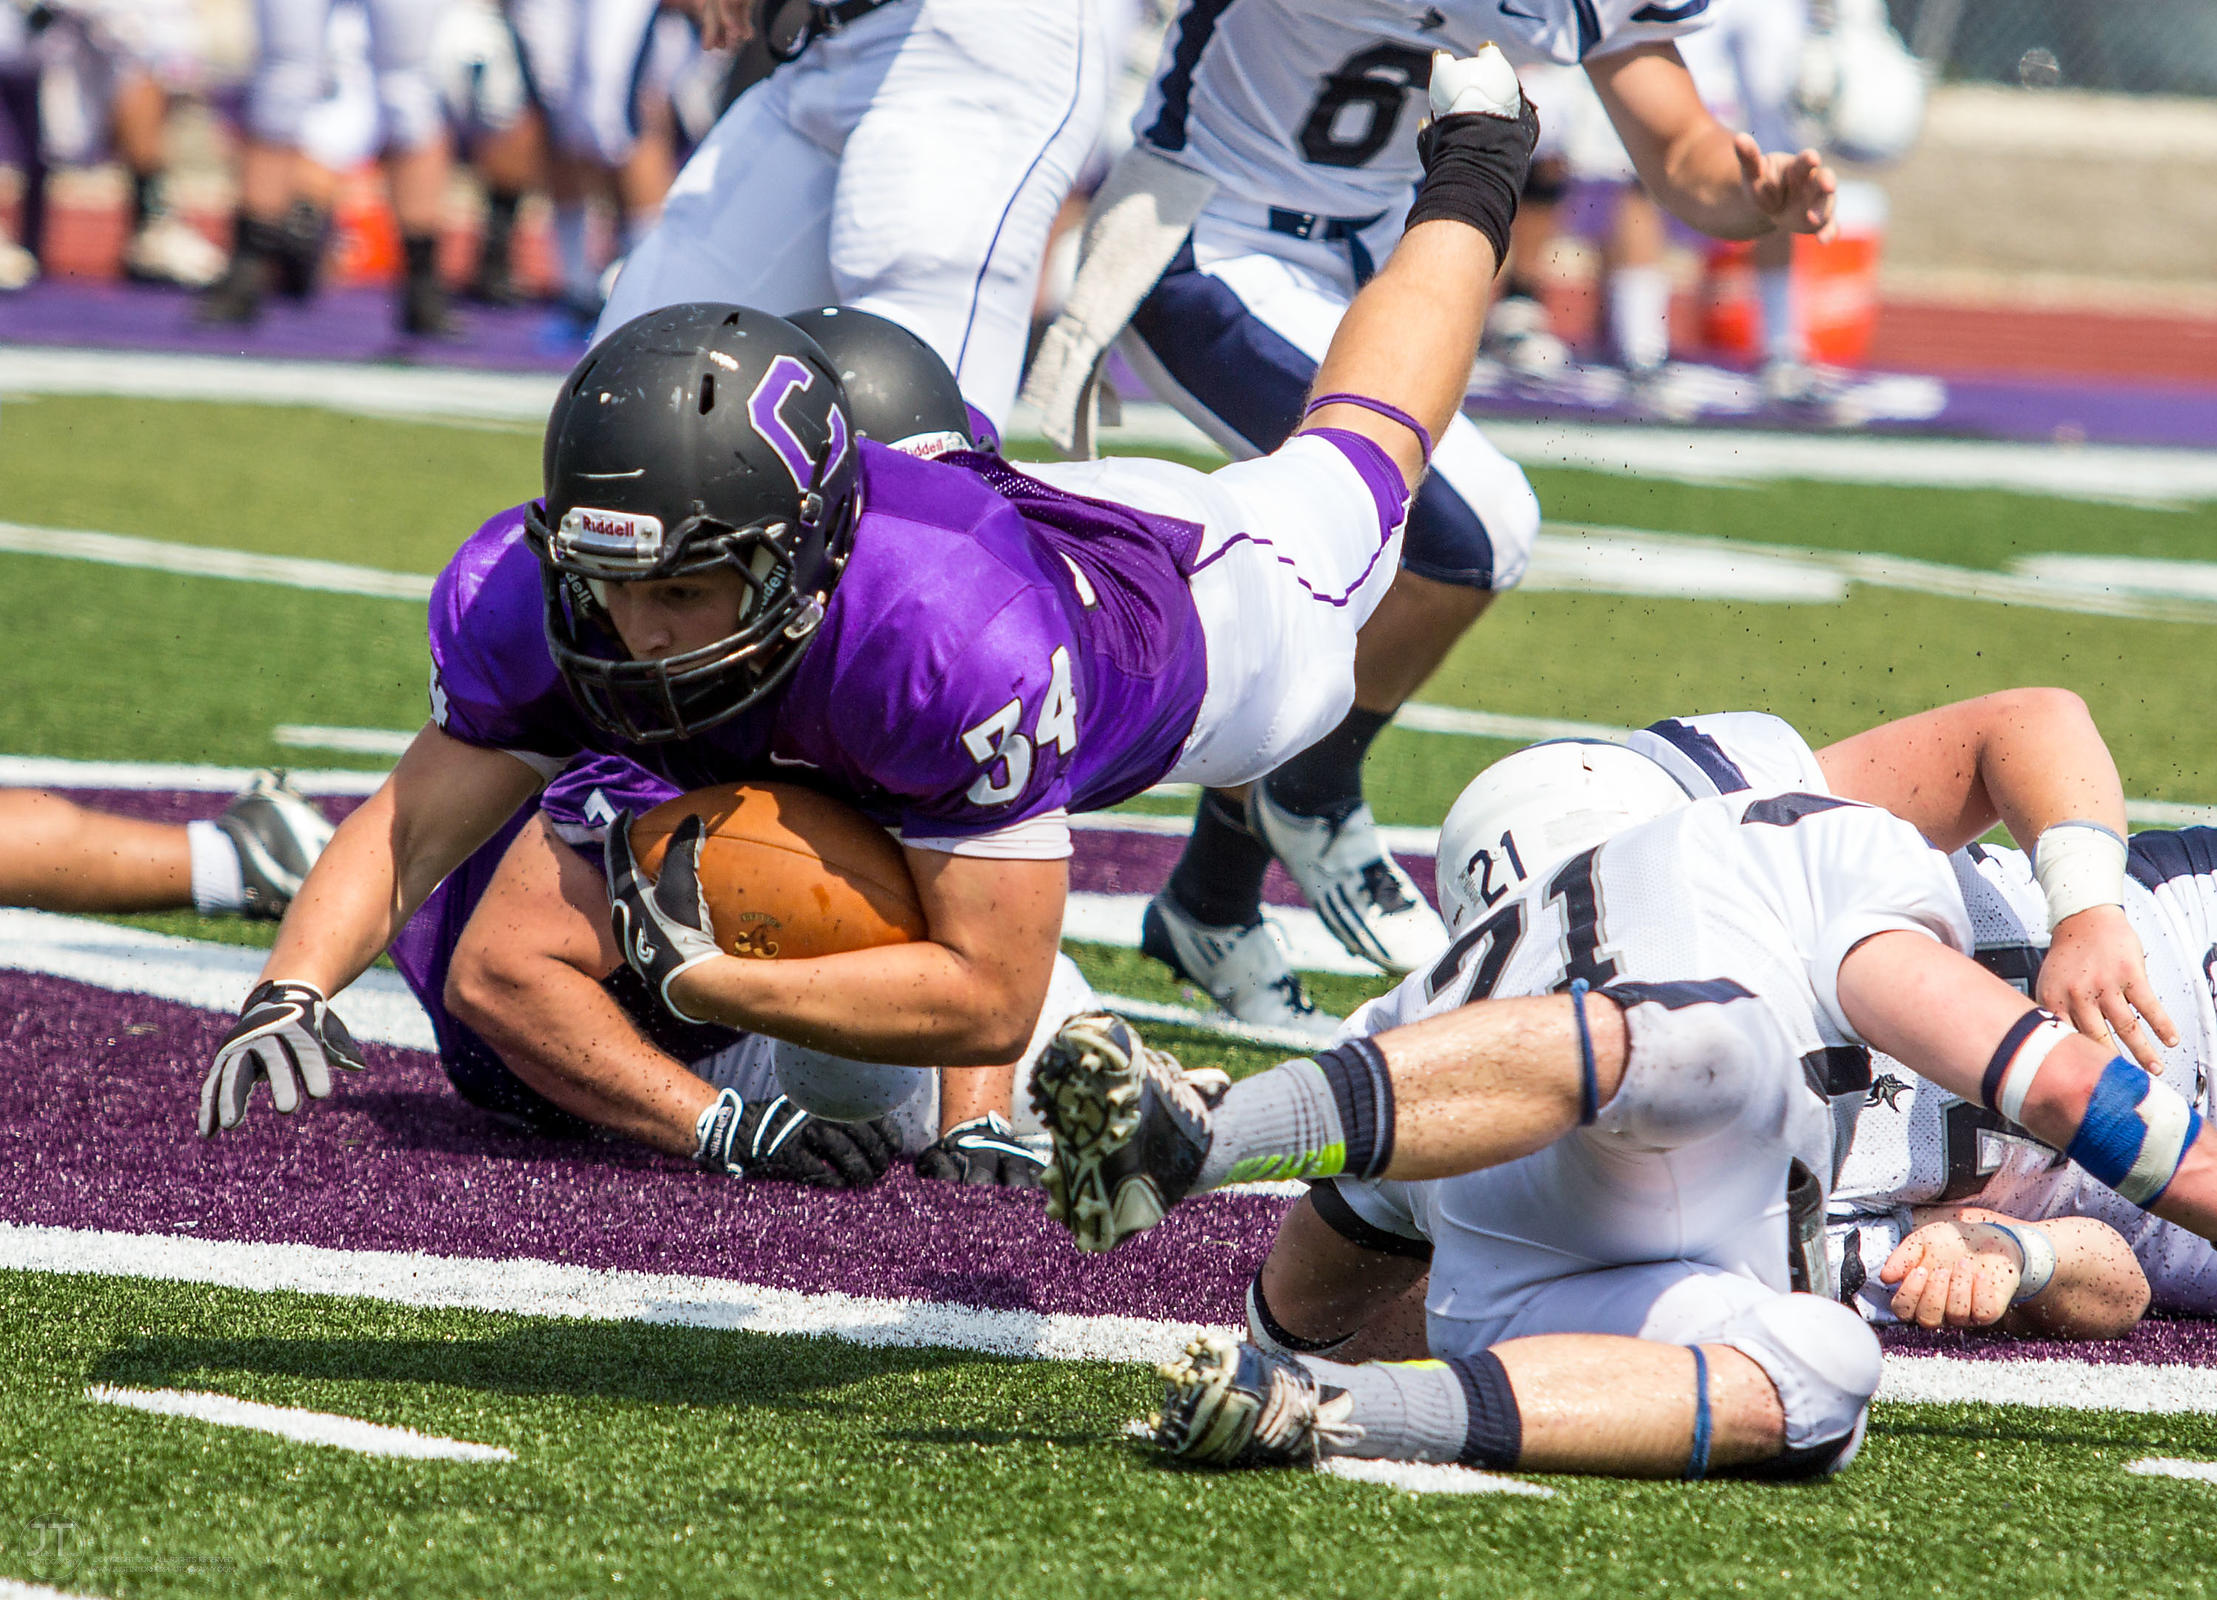 Lawrence vs Cornell Football, Sept 7, 2013